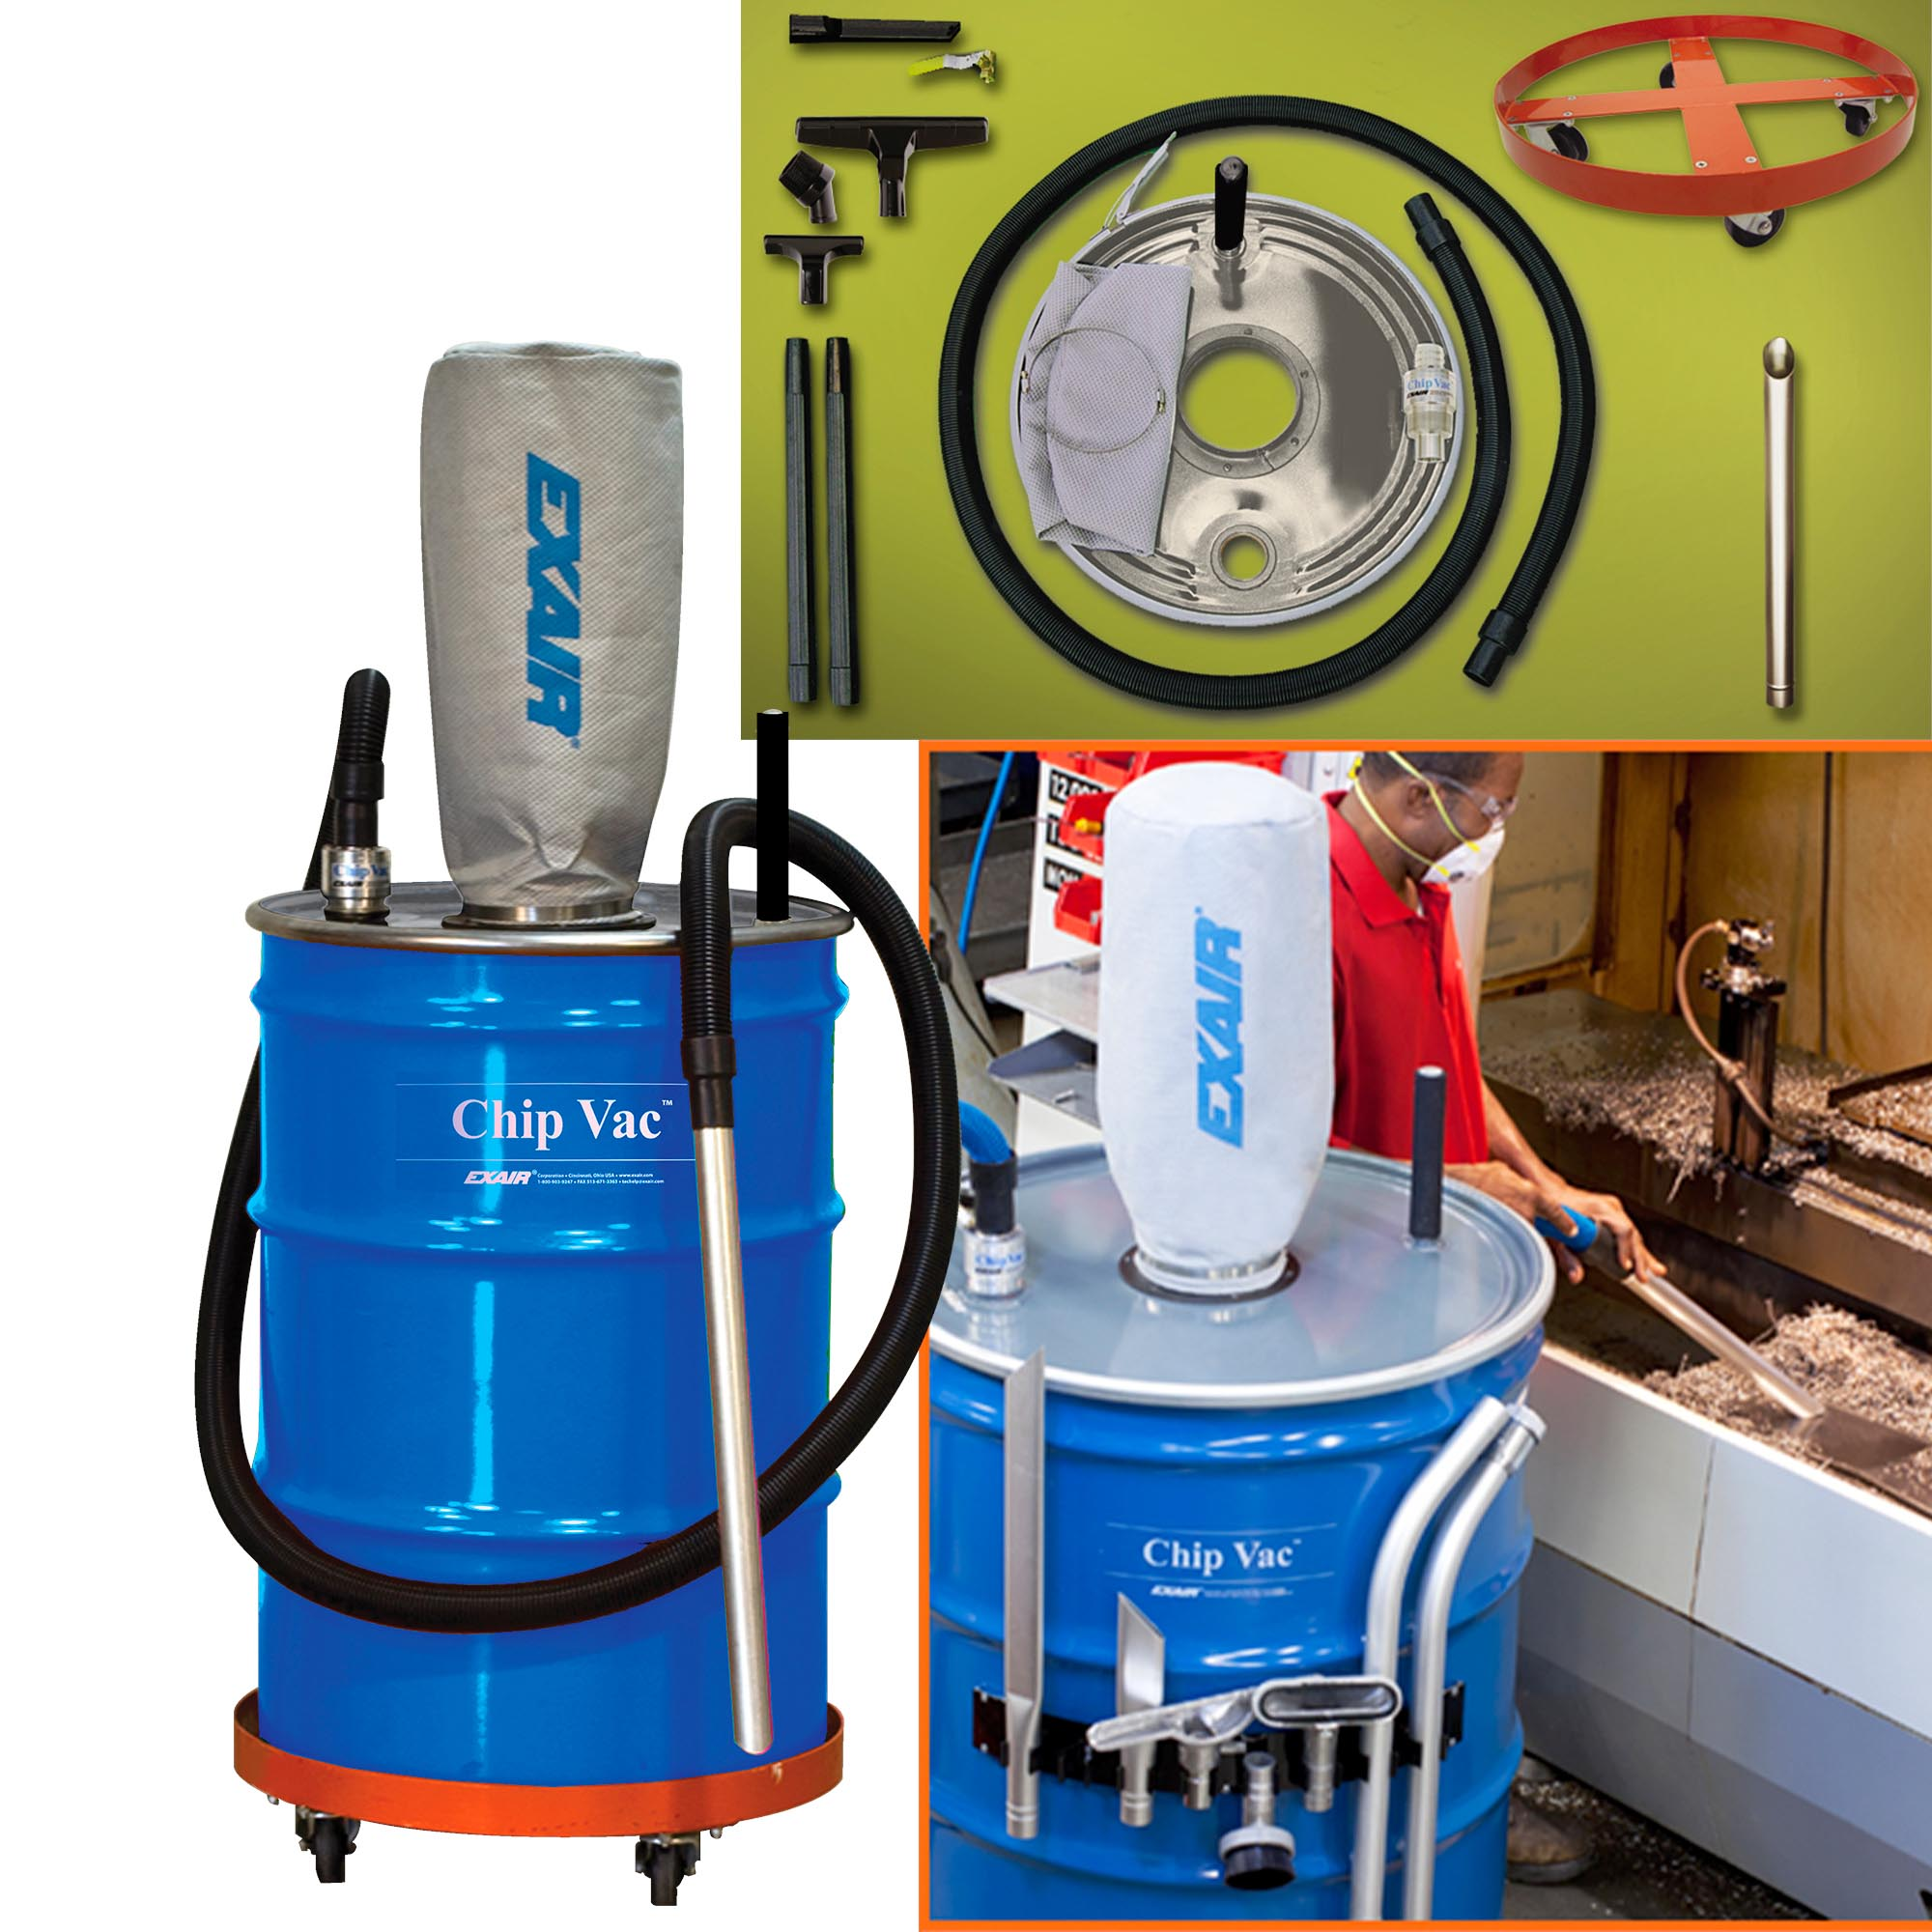 110 Gallon Chip Vac offers maximum capacity cleanup on a large machining operation.